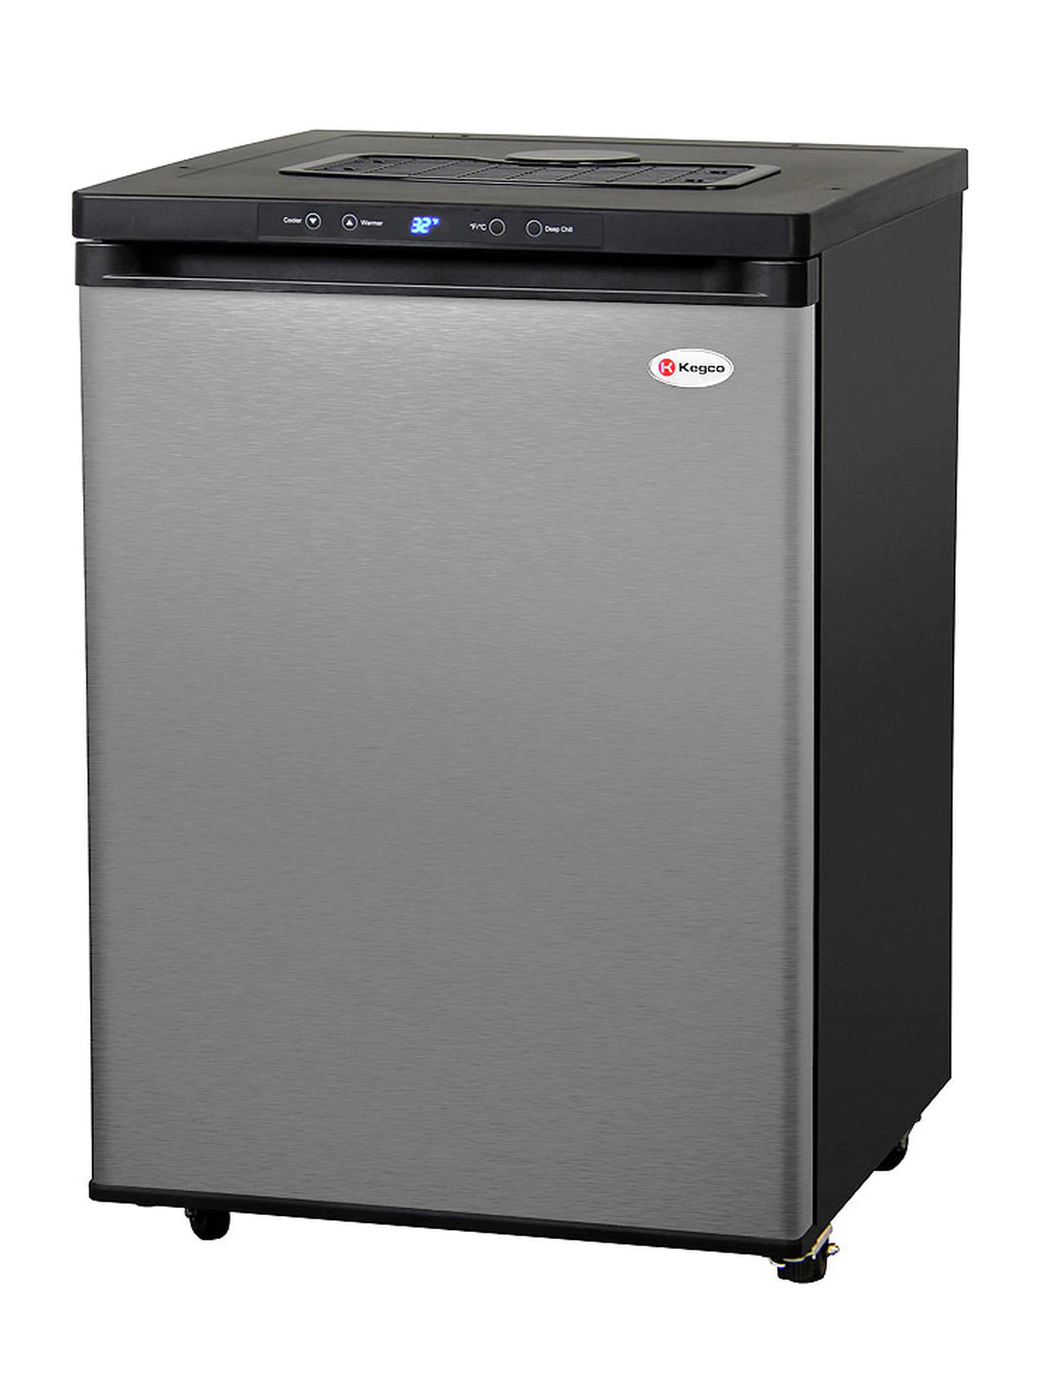 FULL SIZE DIGITAL KEGERATOR - BLACK CABINET WITH STAINLESS STEEL DOOR - NO KIT, CABINET ONLY